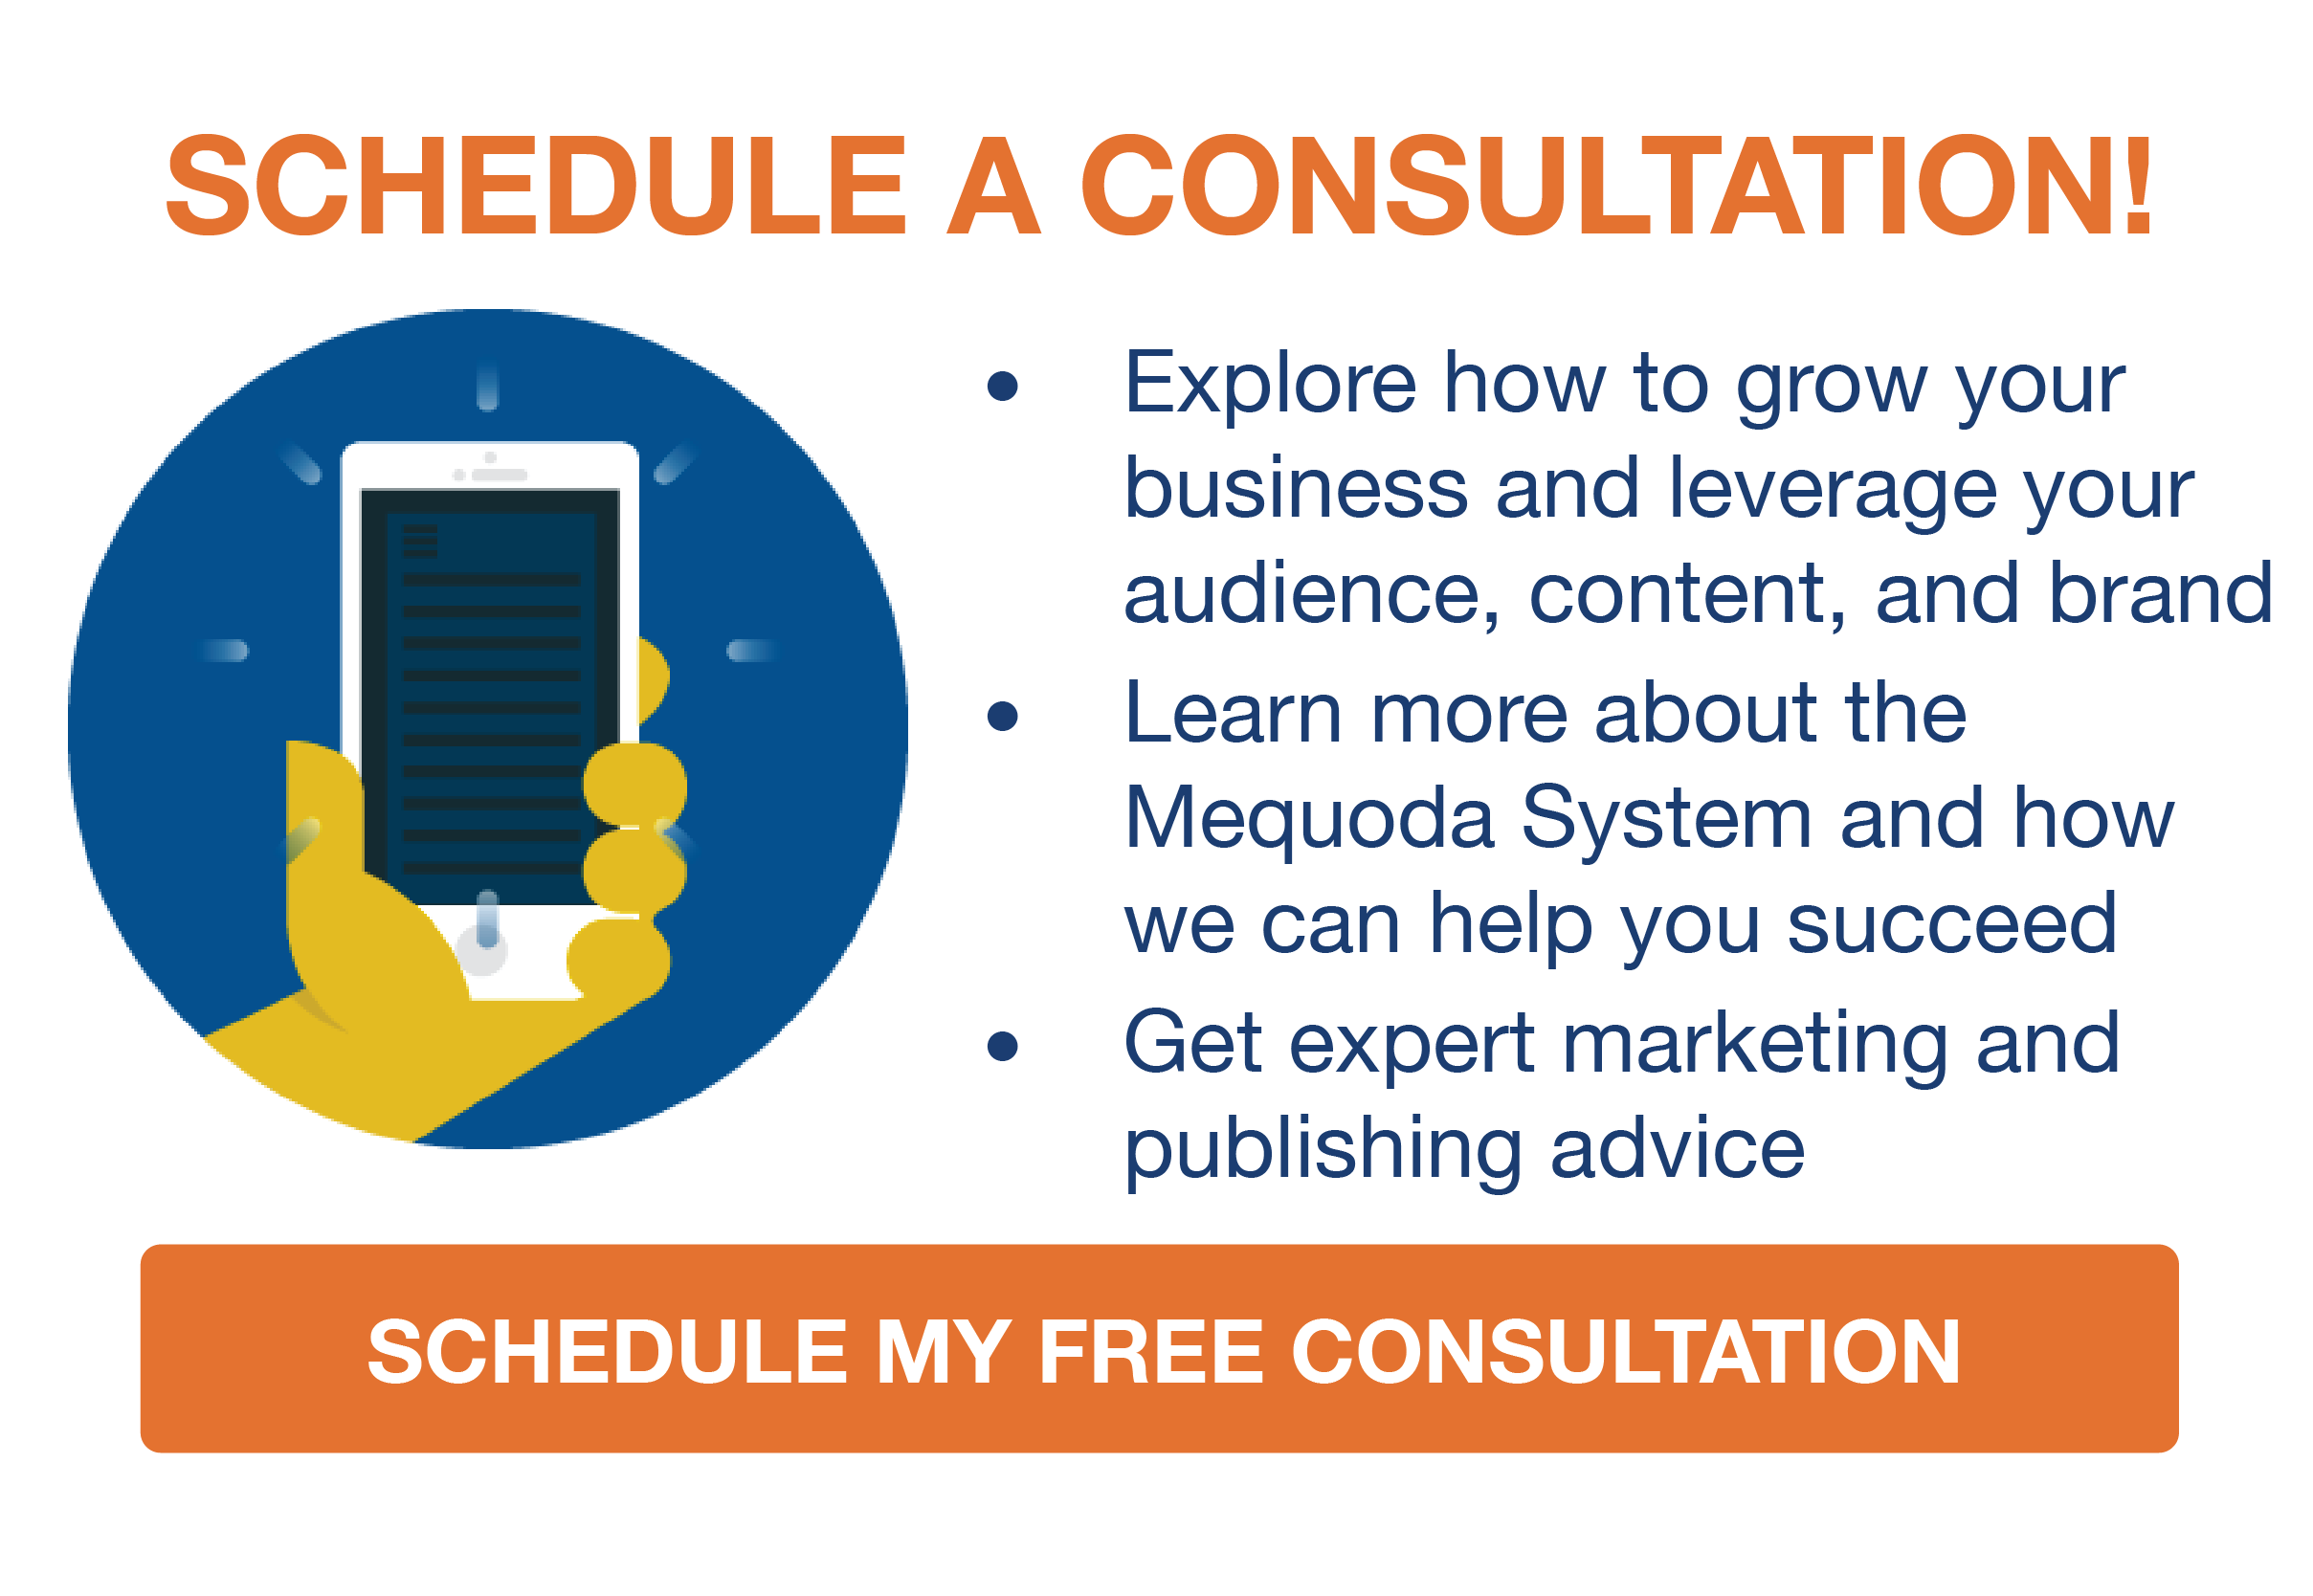 Schedule a consultation today.